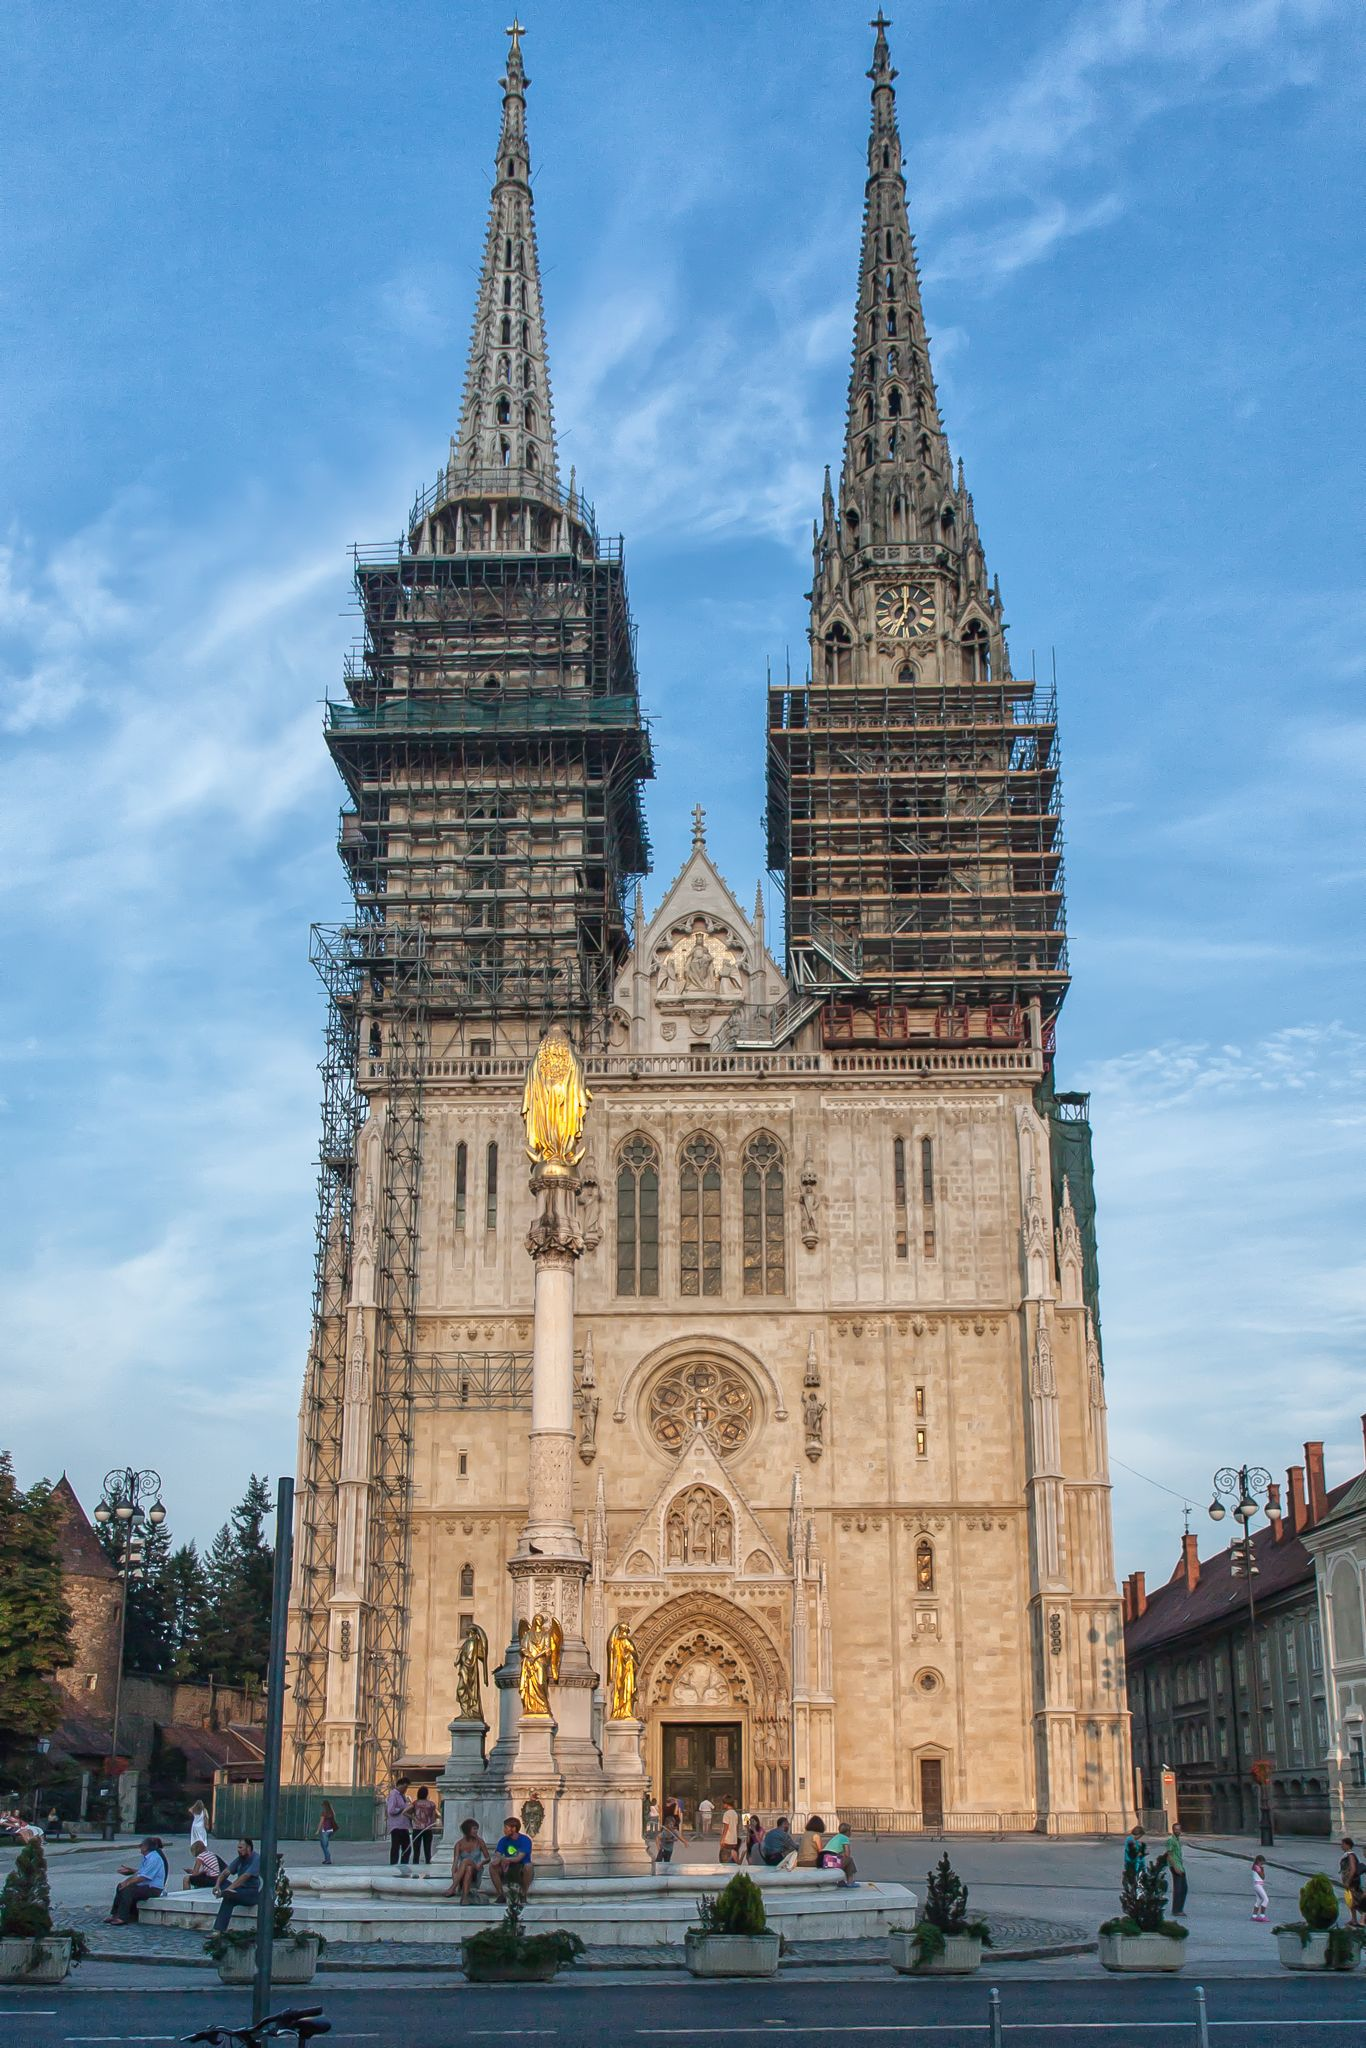 Http Travelnotesfromtheworld Airportconnection It The Zagreb Cathedral On Kaptol Is A Roman Catholic Institution And The Zagreb Cathedral Zagreb Croatia